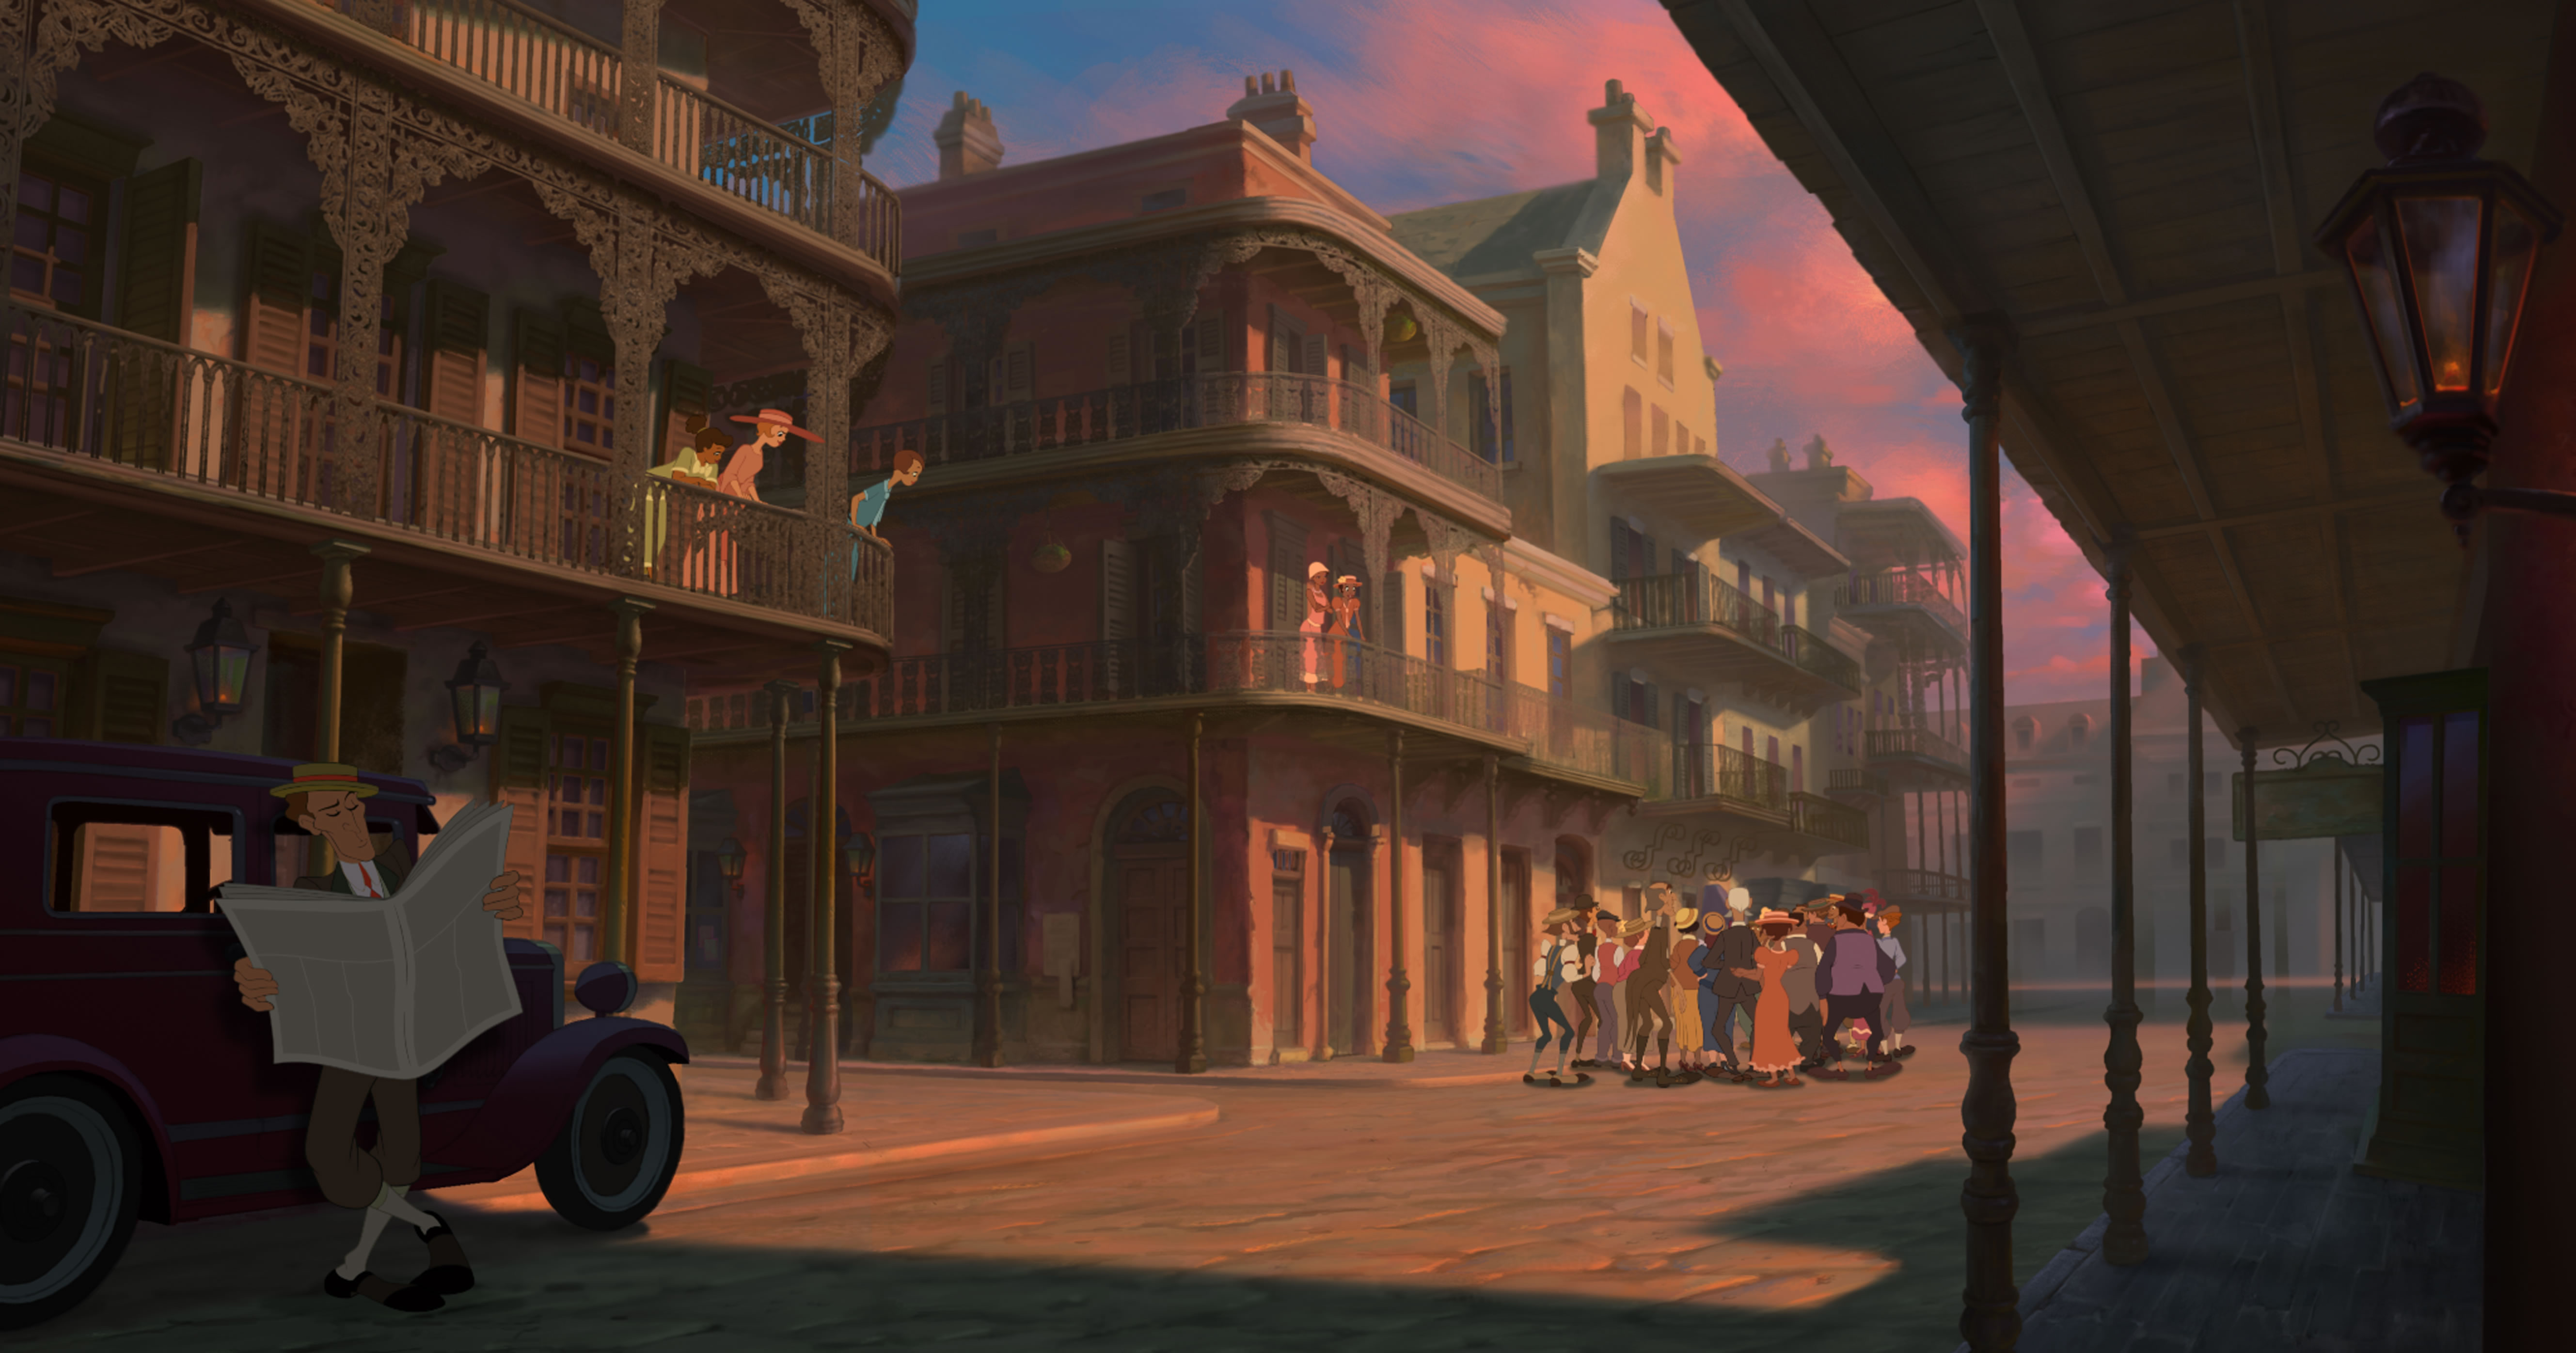 download French Quarter from Disneys Princess and the Frog 5315x2792